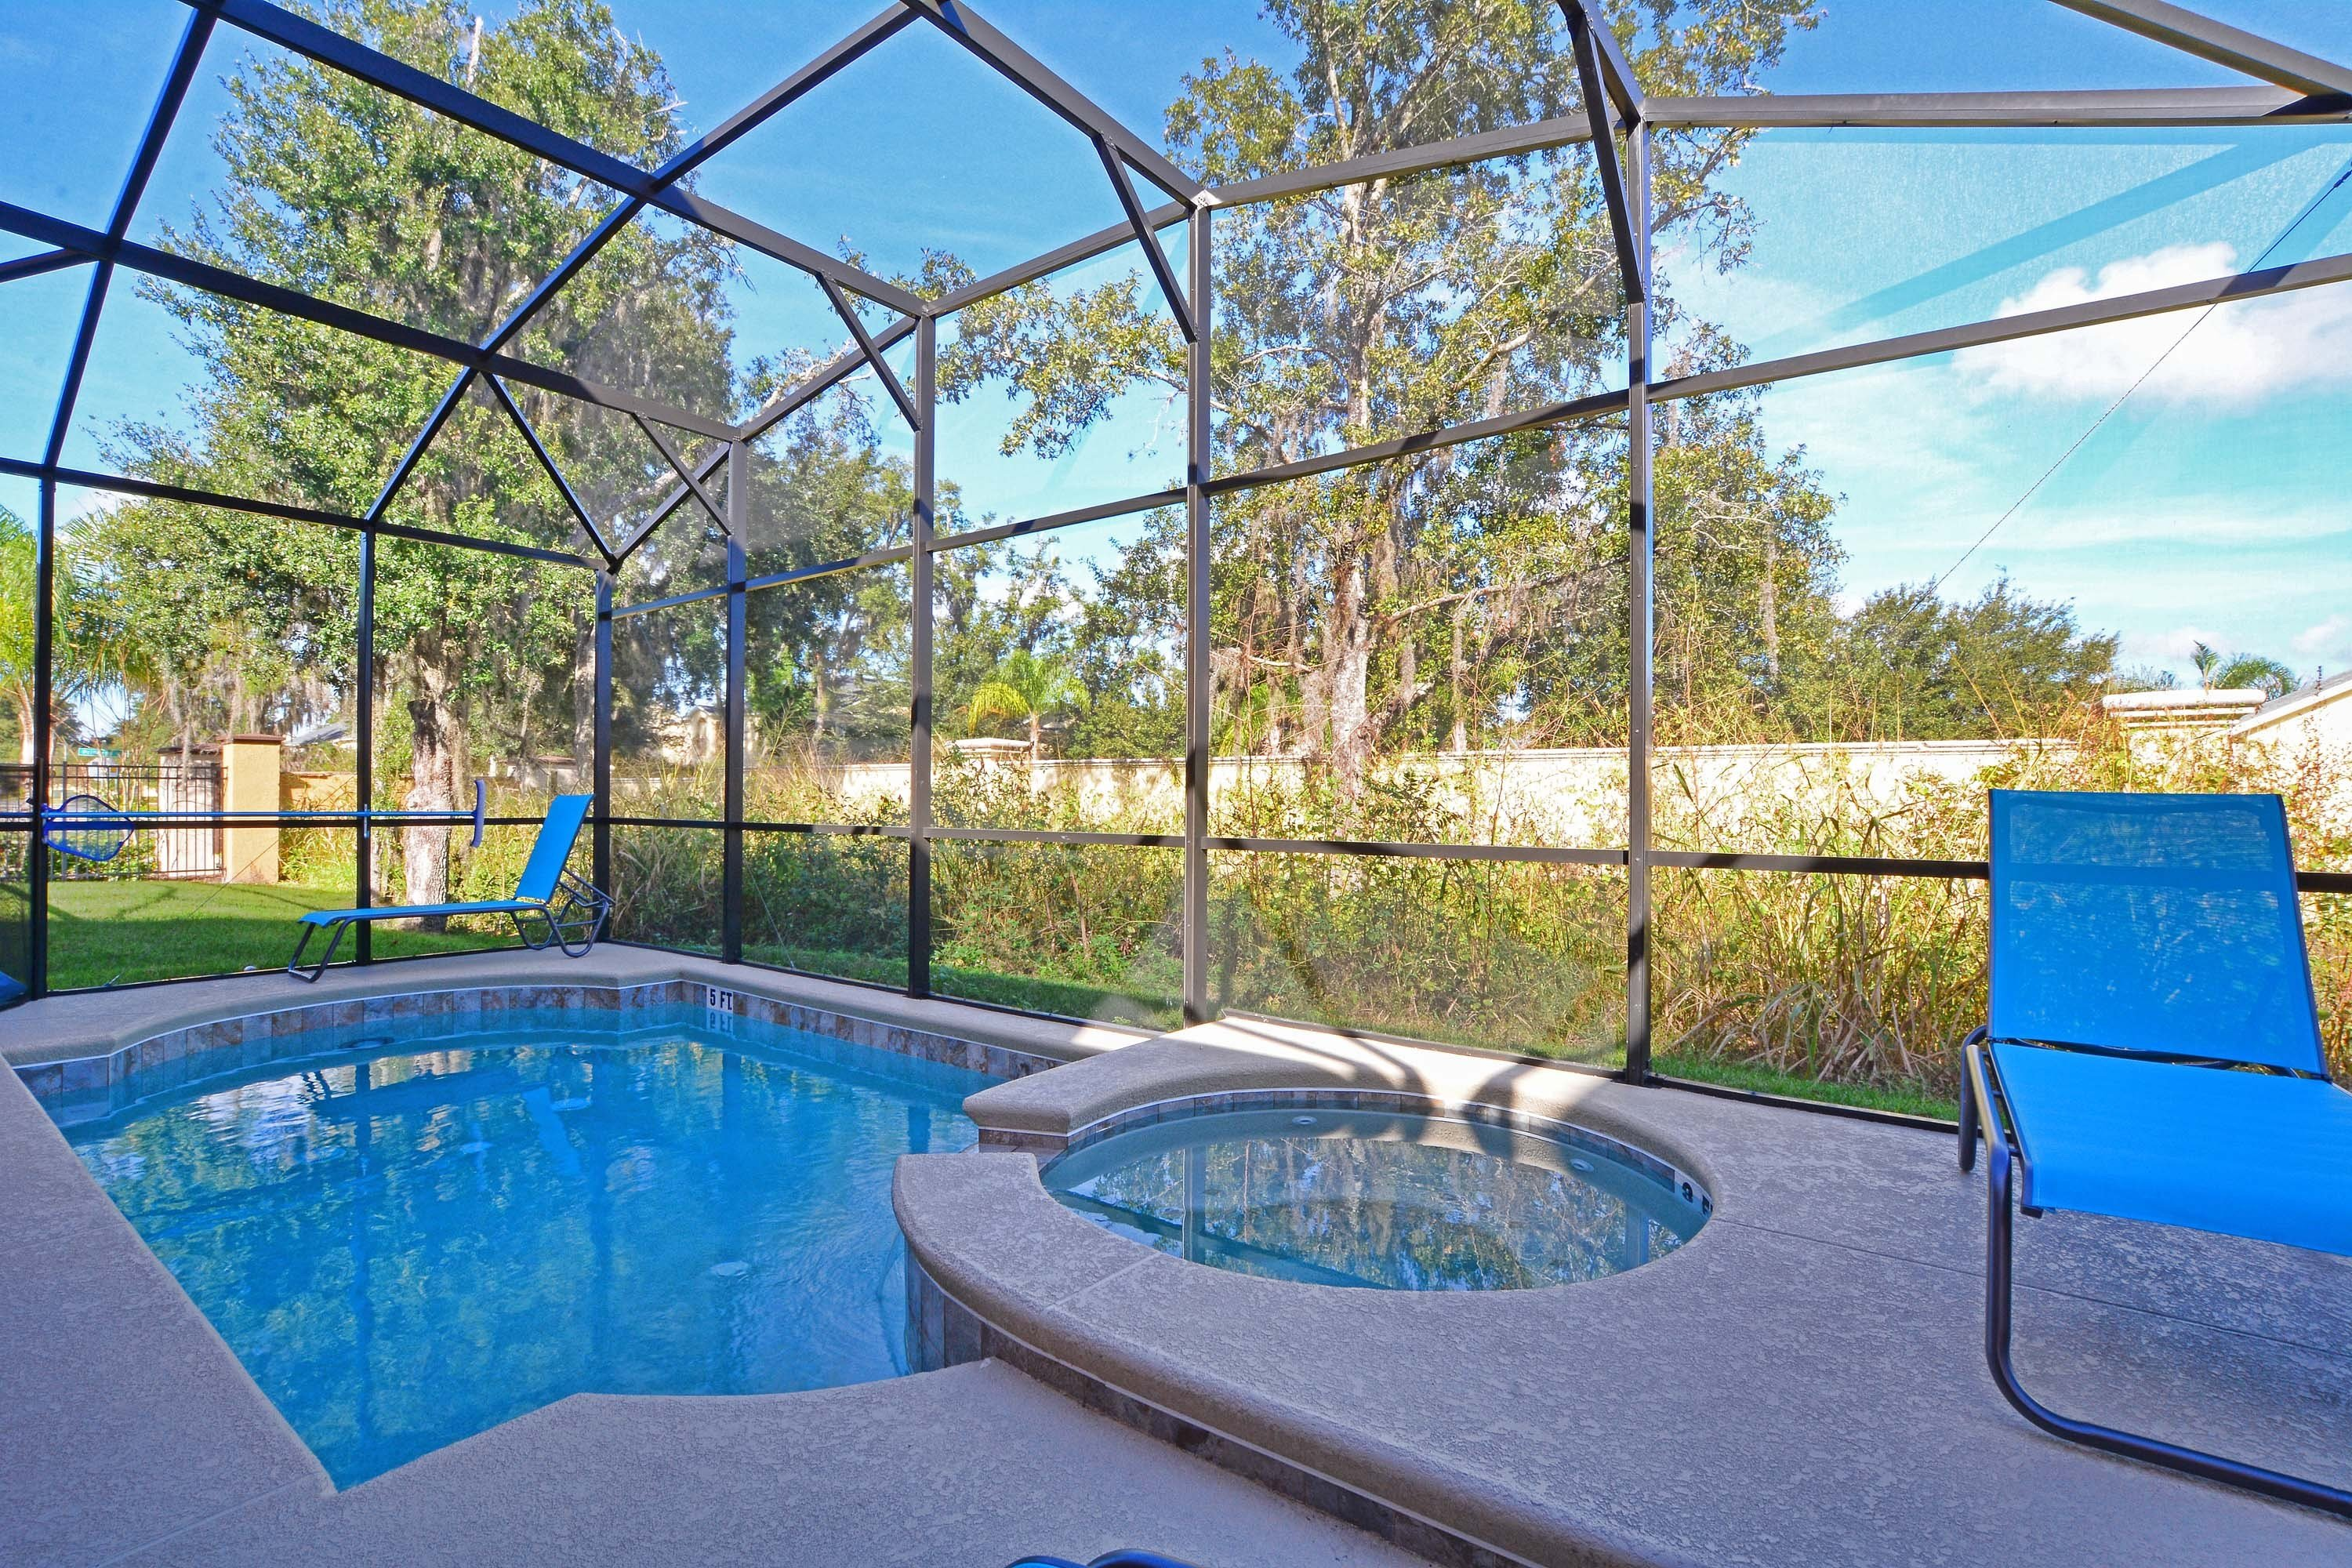 Best 5 Bedroom Homes To Rent Near Disney World With Pictures